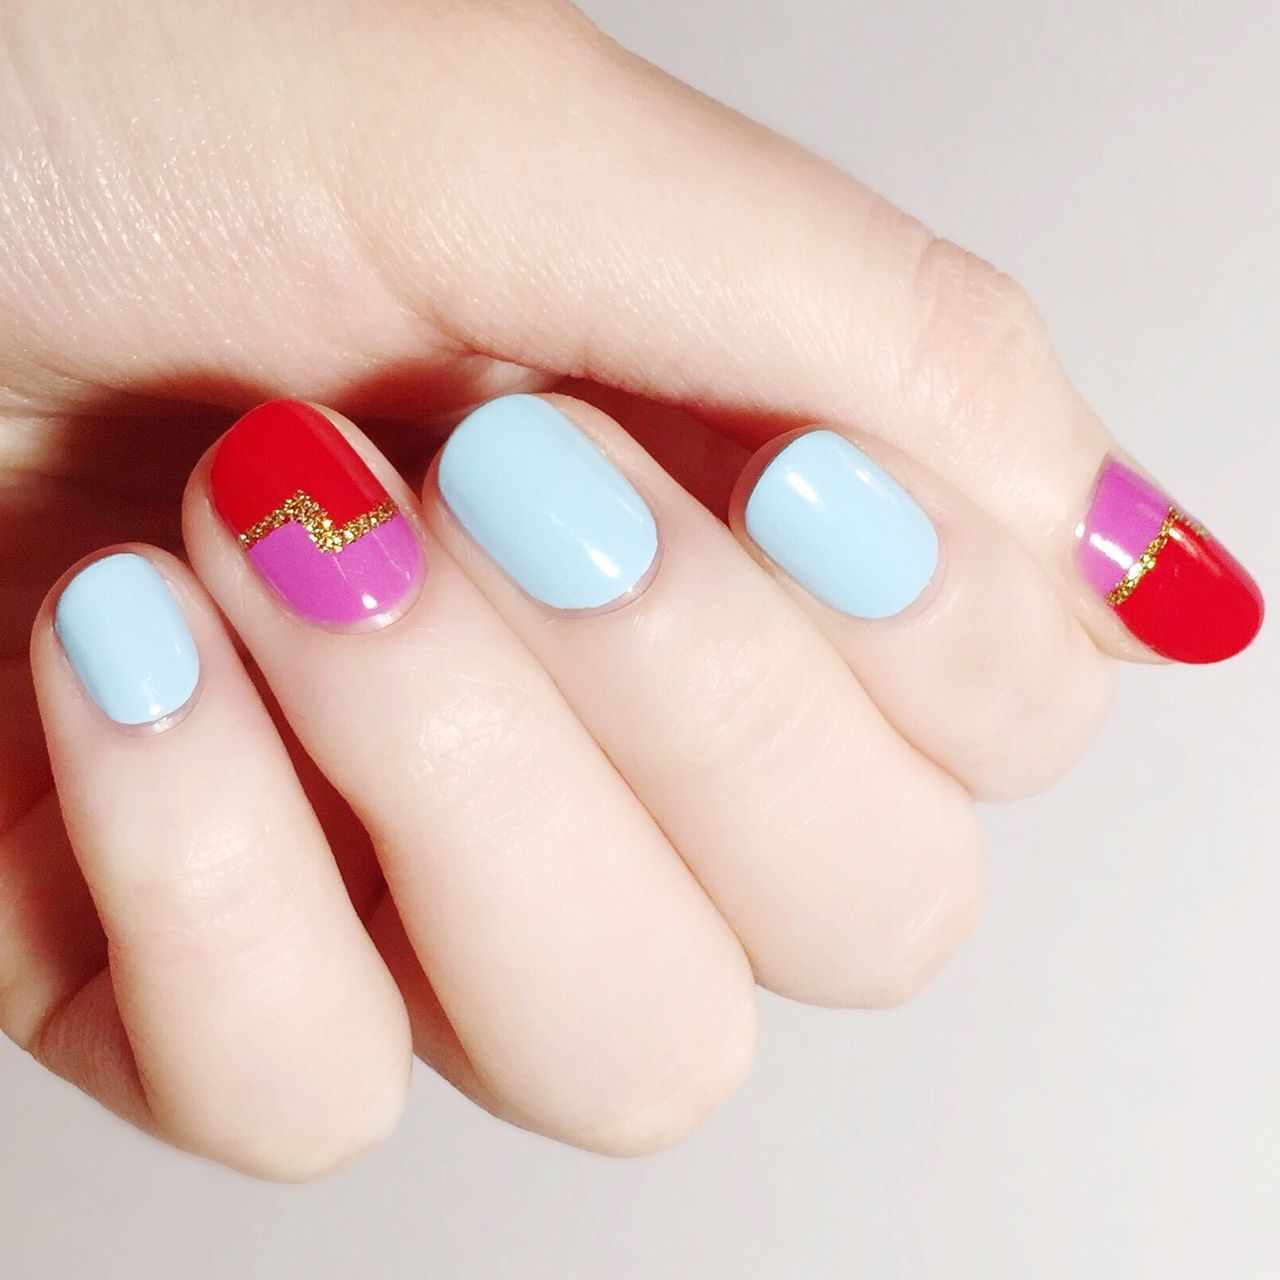 I ❤ NAILS BLOG — Two-toned nails inspired by Madeline Poole.